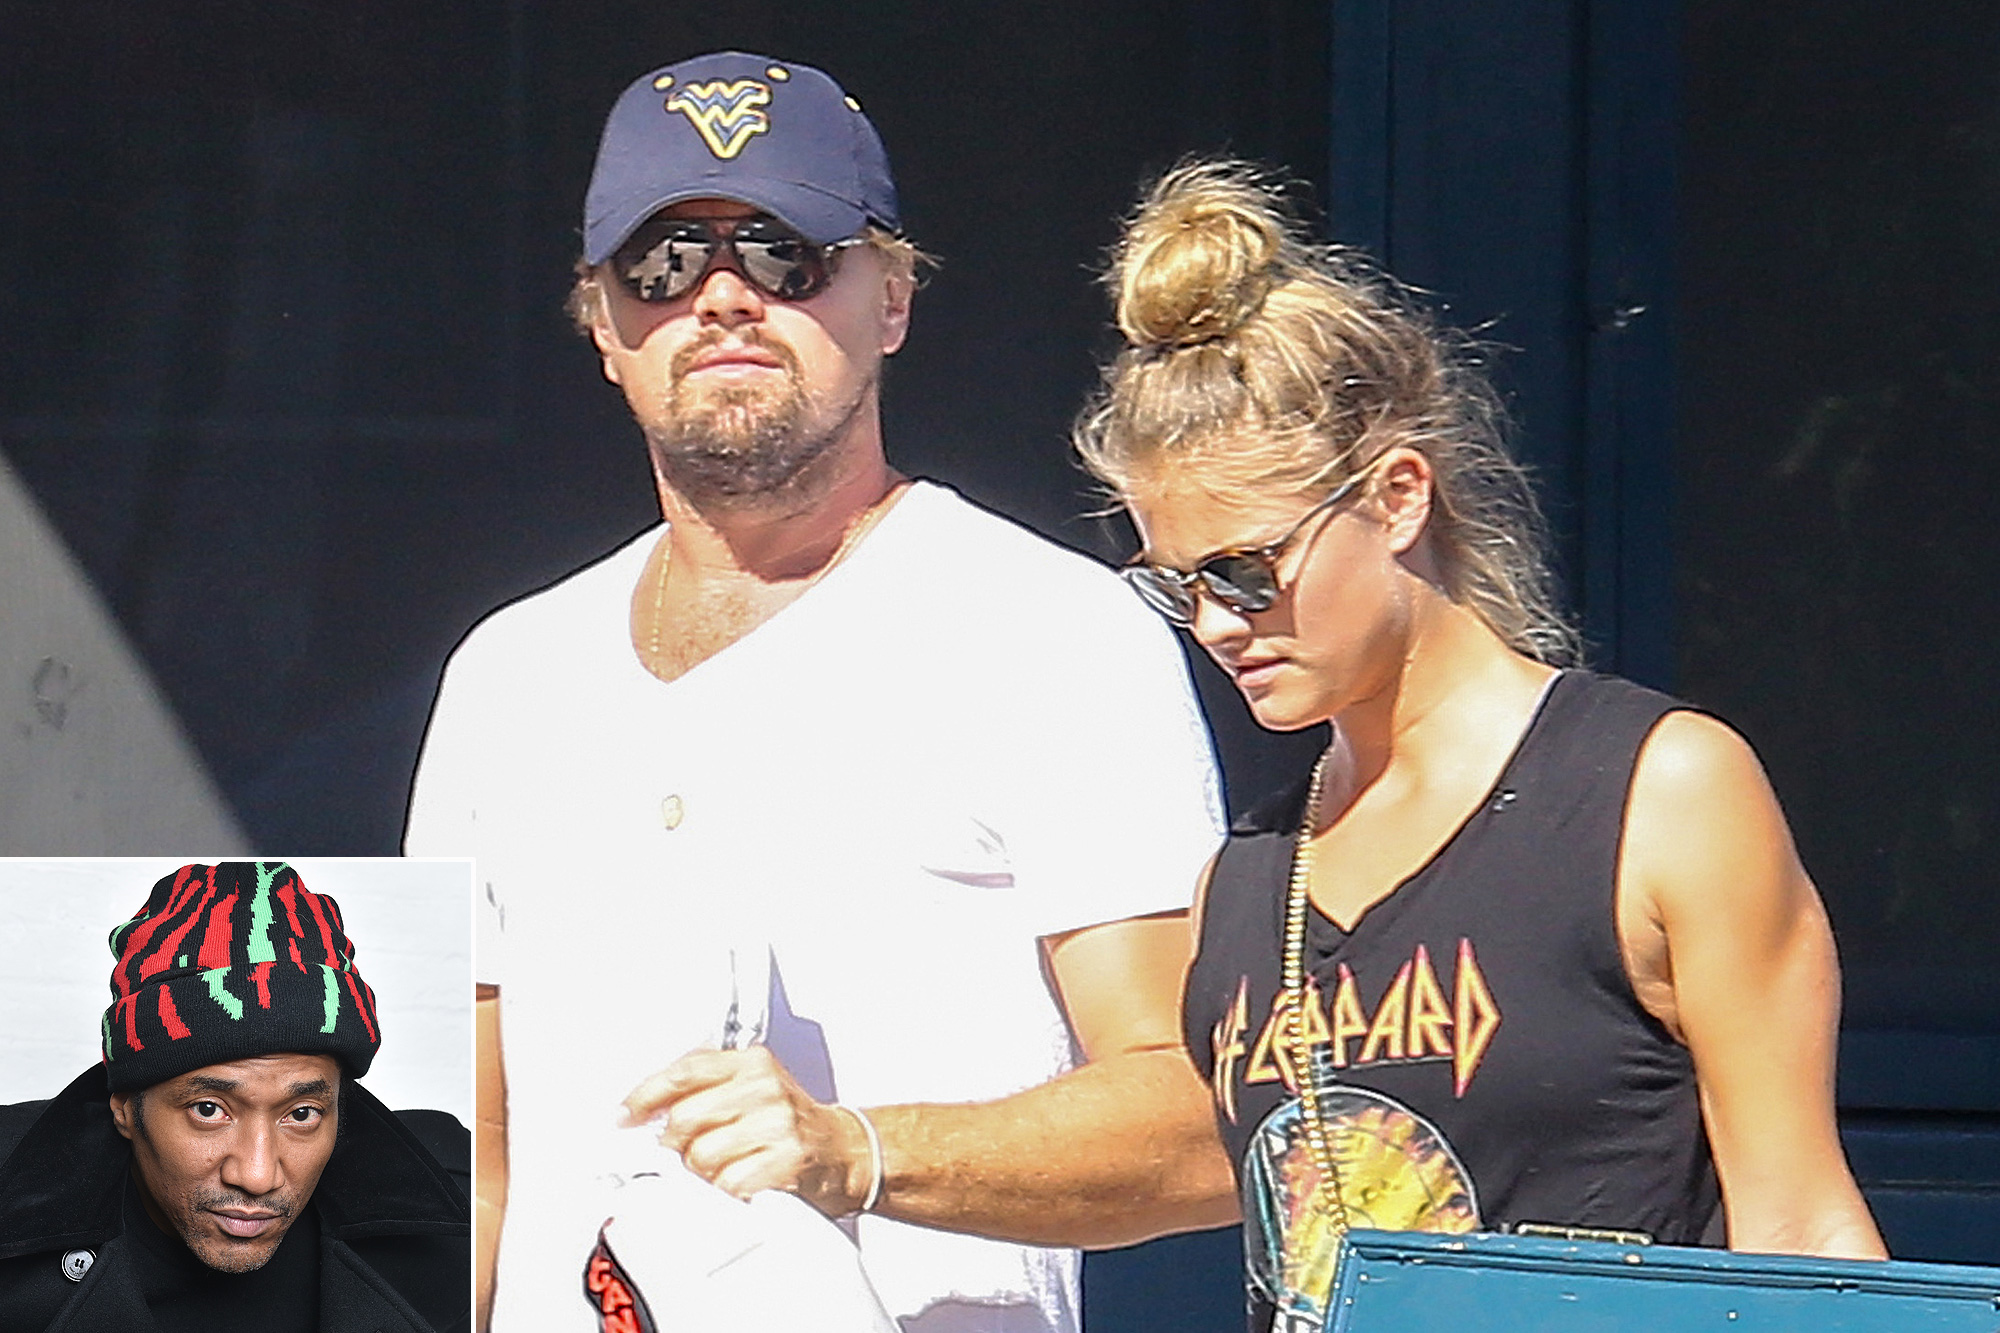 *EXCLUSIVE* Leonardo DiCaprio spends the day with Nina Agdal